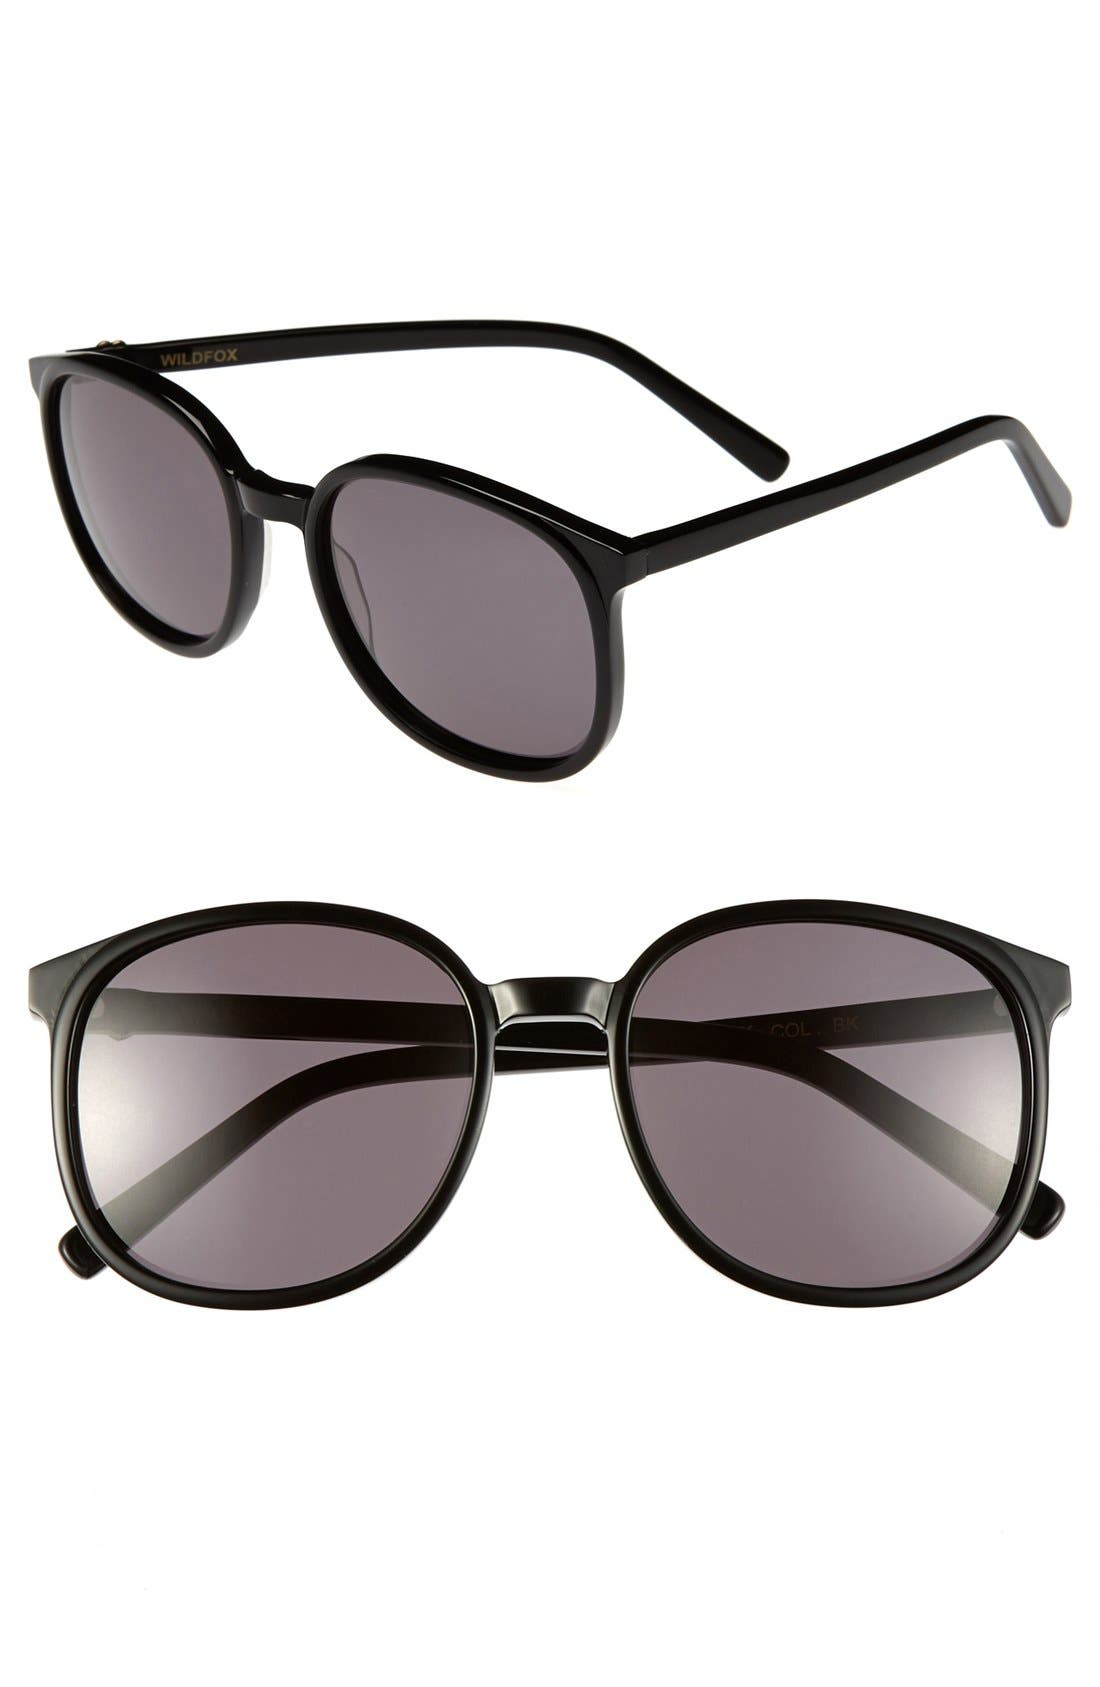 Alternate Image 1 Selected - Wildfox 'Popfox' Sunglasses